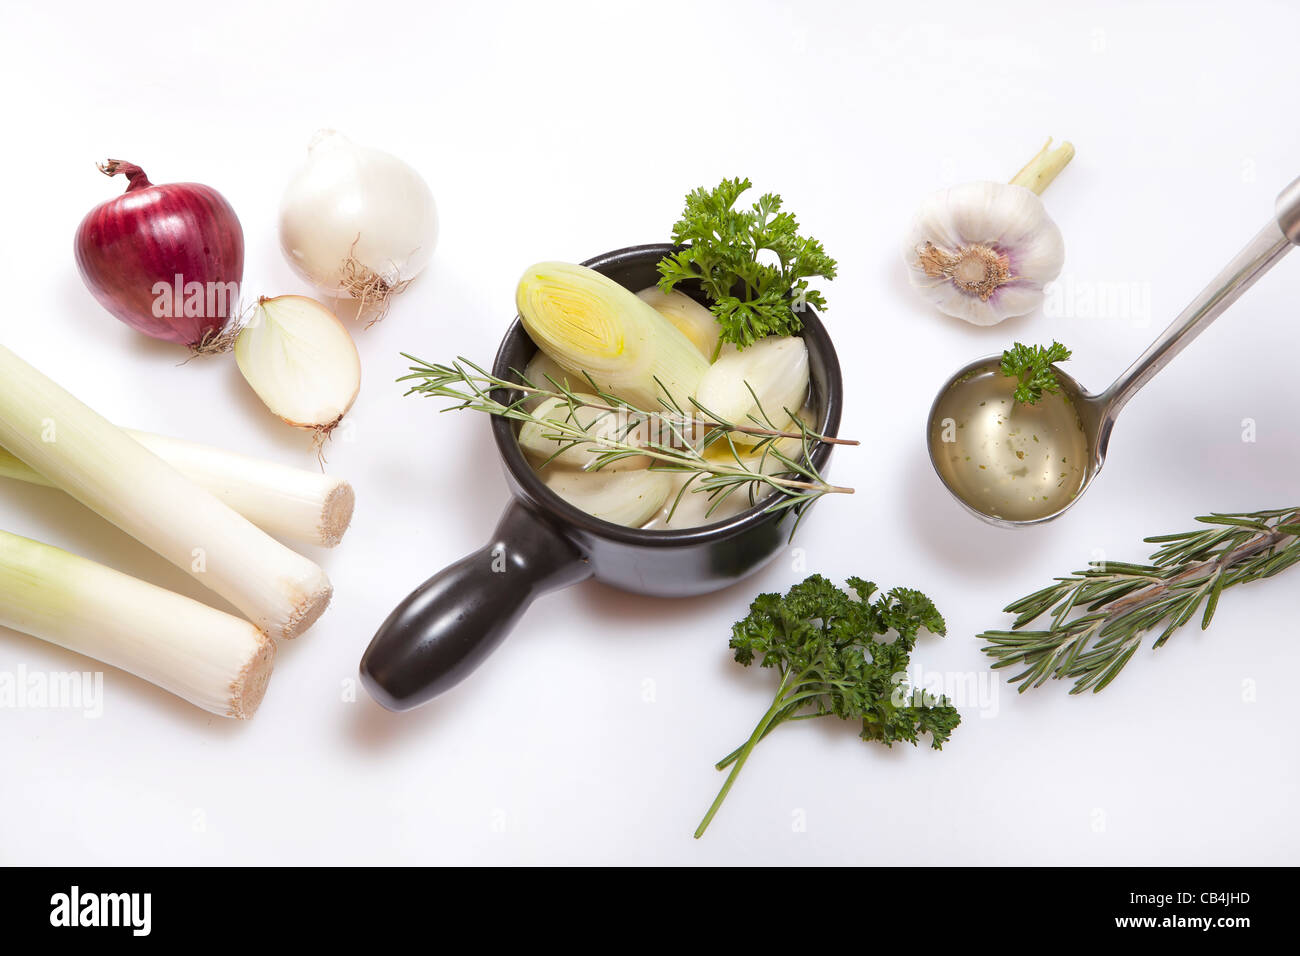 Ingredients for cooking a fresh leek and onion soup  - Stock Image